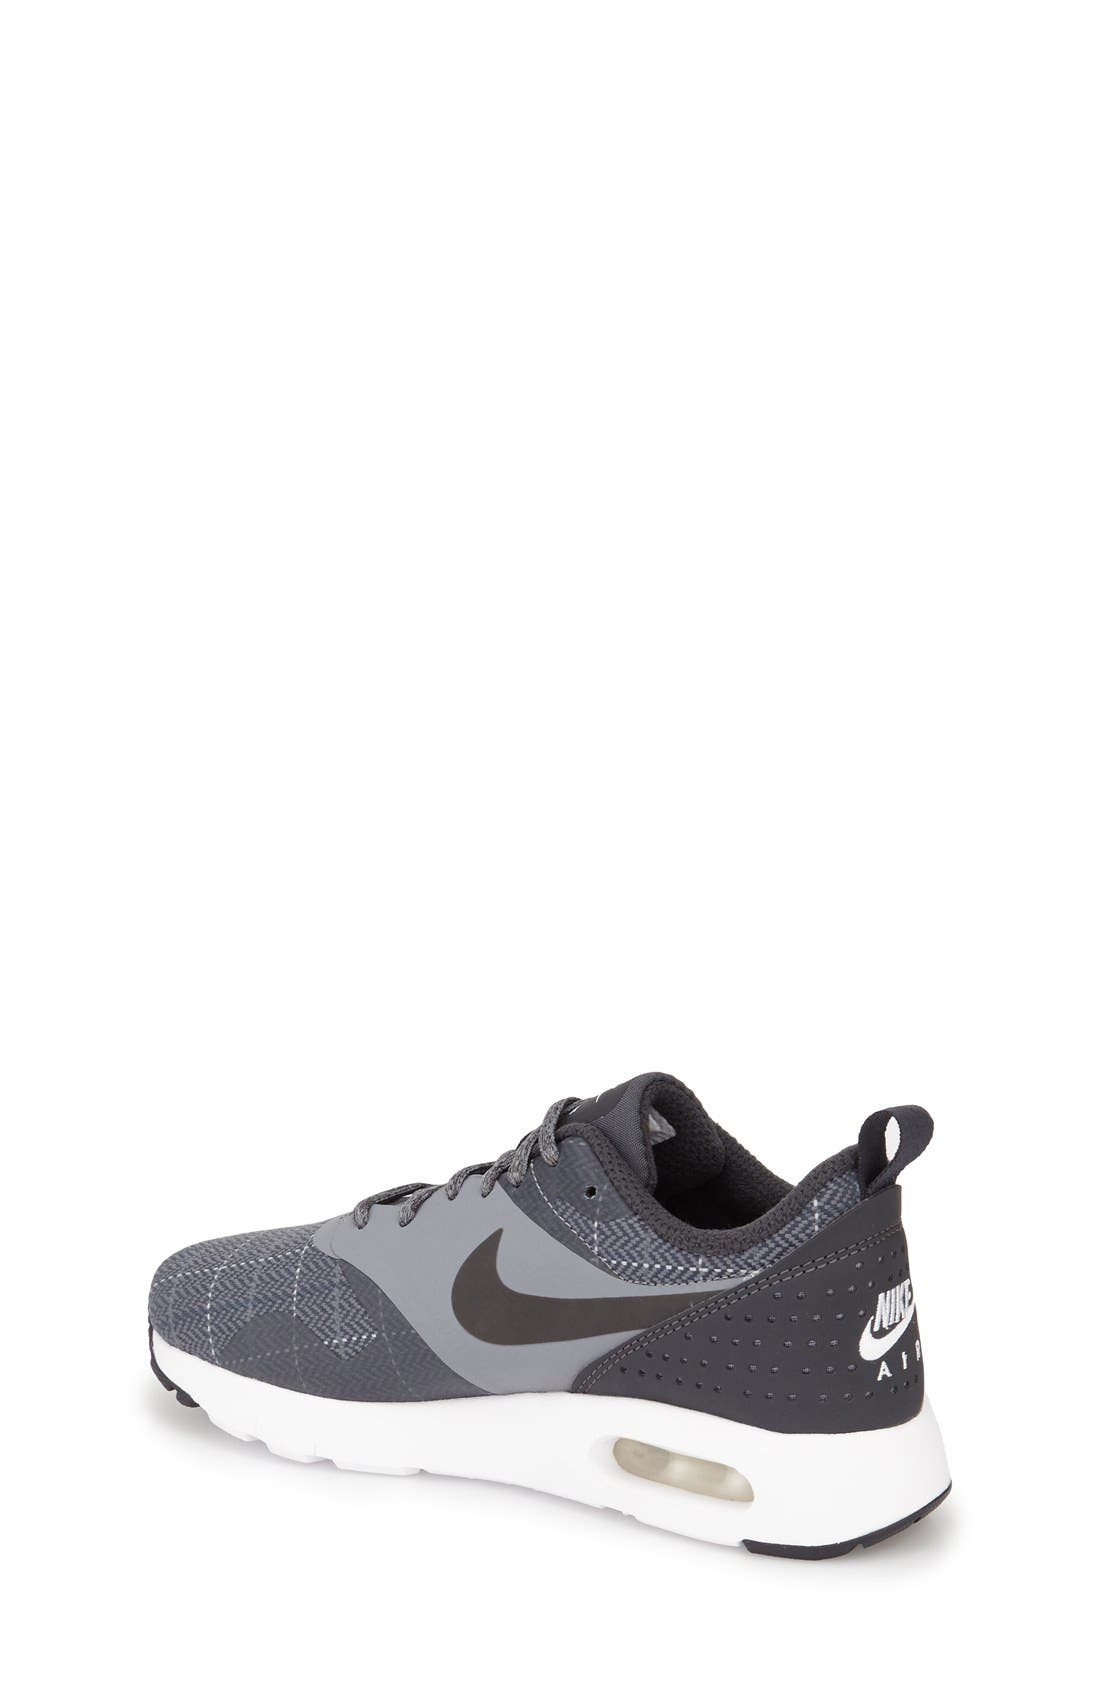 Air Max Tavas Sneaker,                             Alternate thumbnail 2, color,                             001